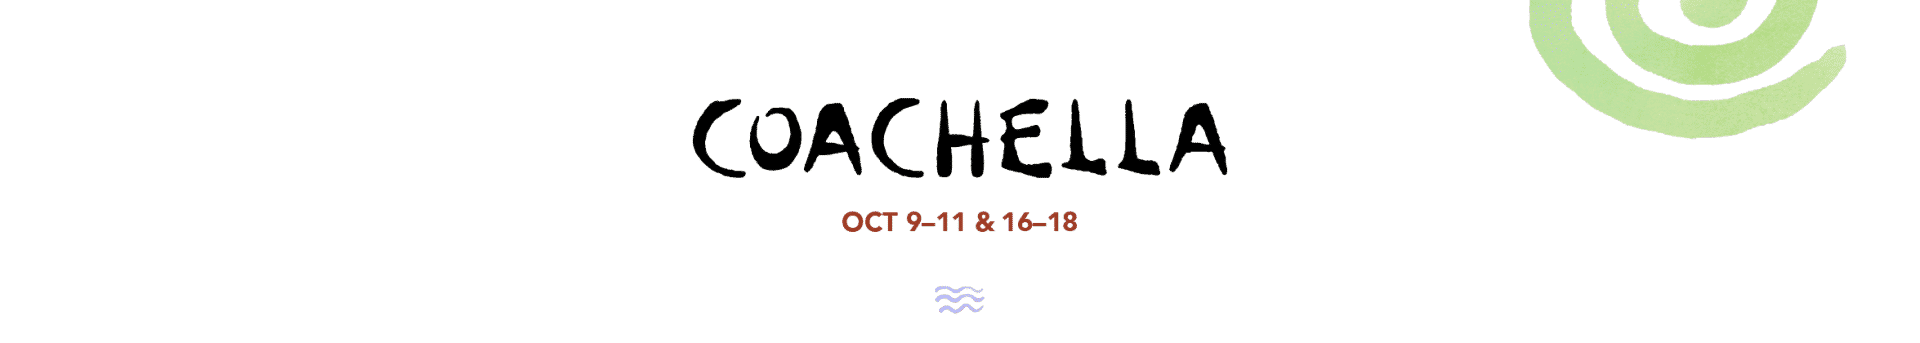 Coachella 2020 Travel Packages: Weekend One